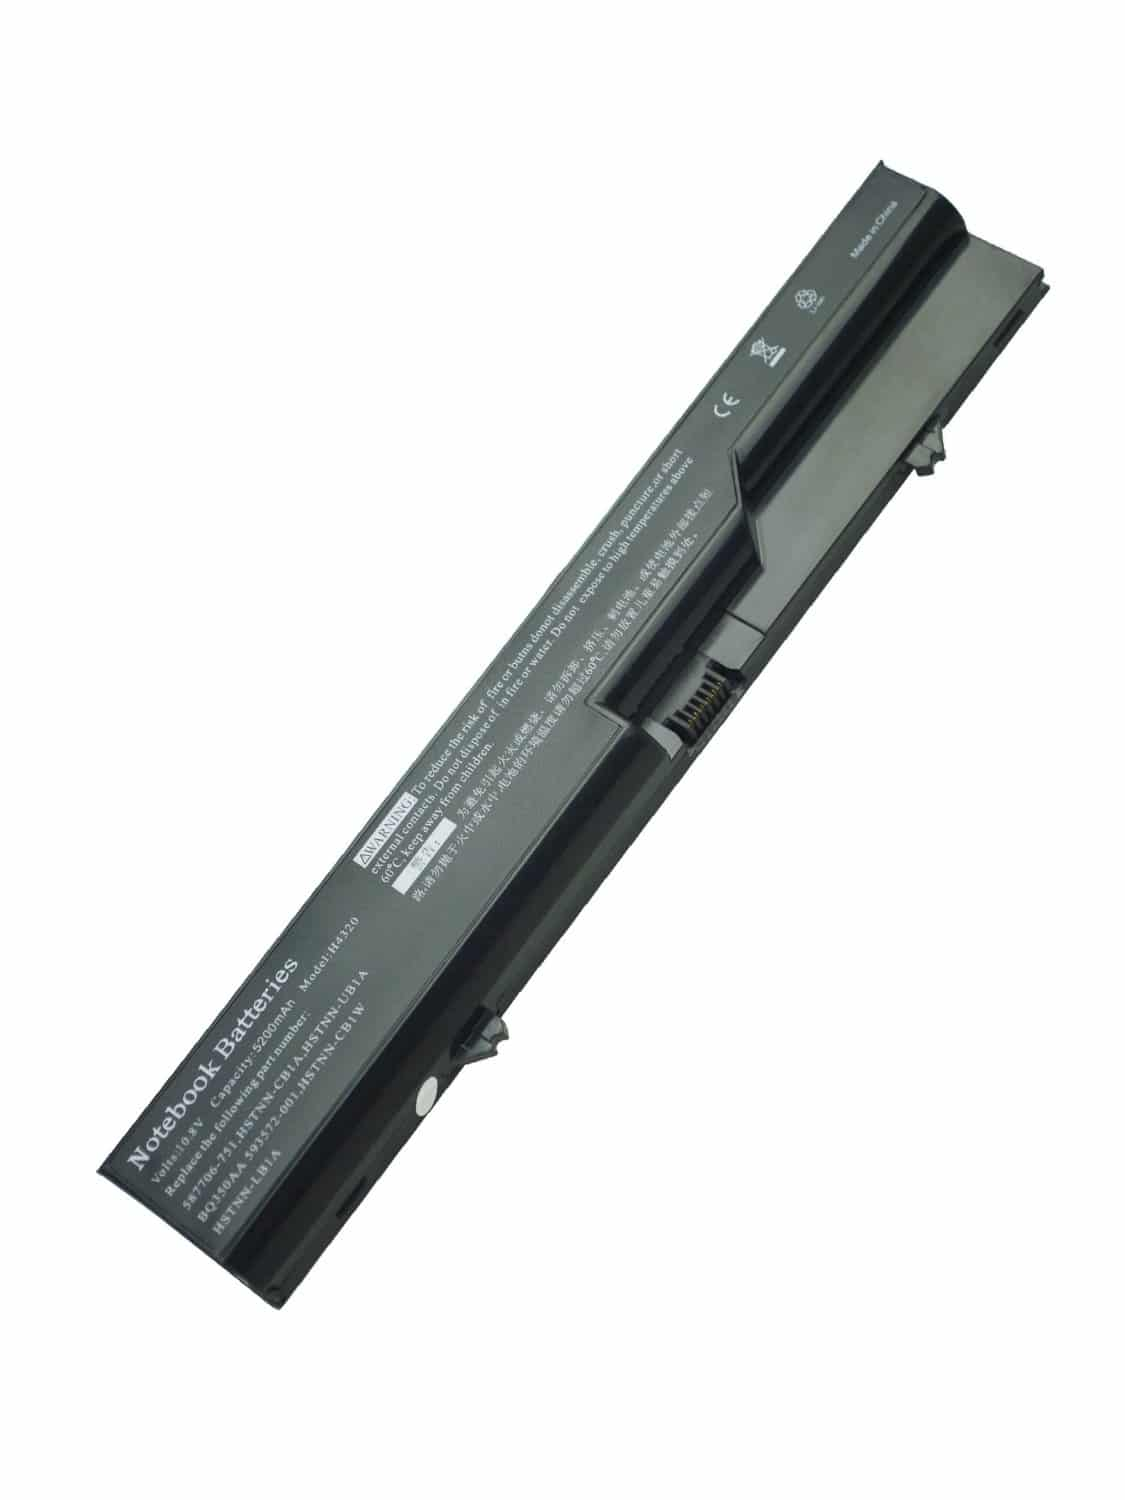 Replacement Battery for Hp Probook 4000 4320s 593572-001 4321s 4320t 4420s Ph06 420 Laptop Battery 6-cells